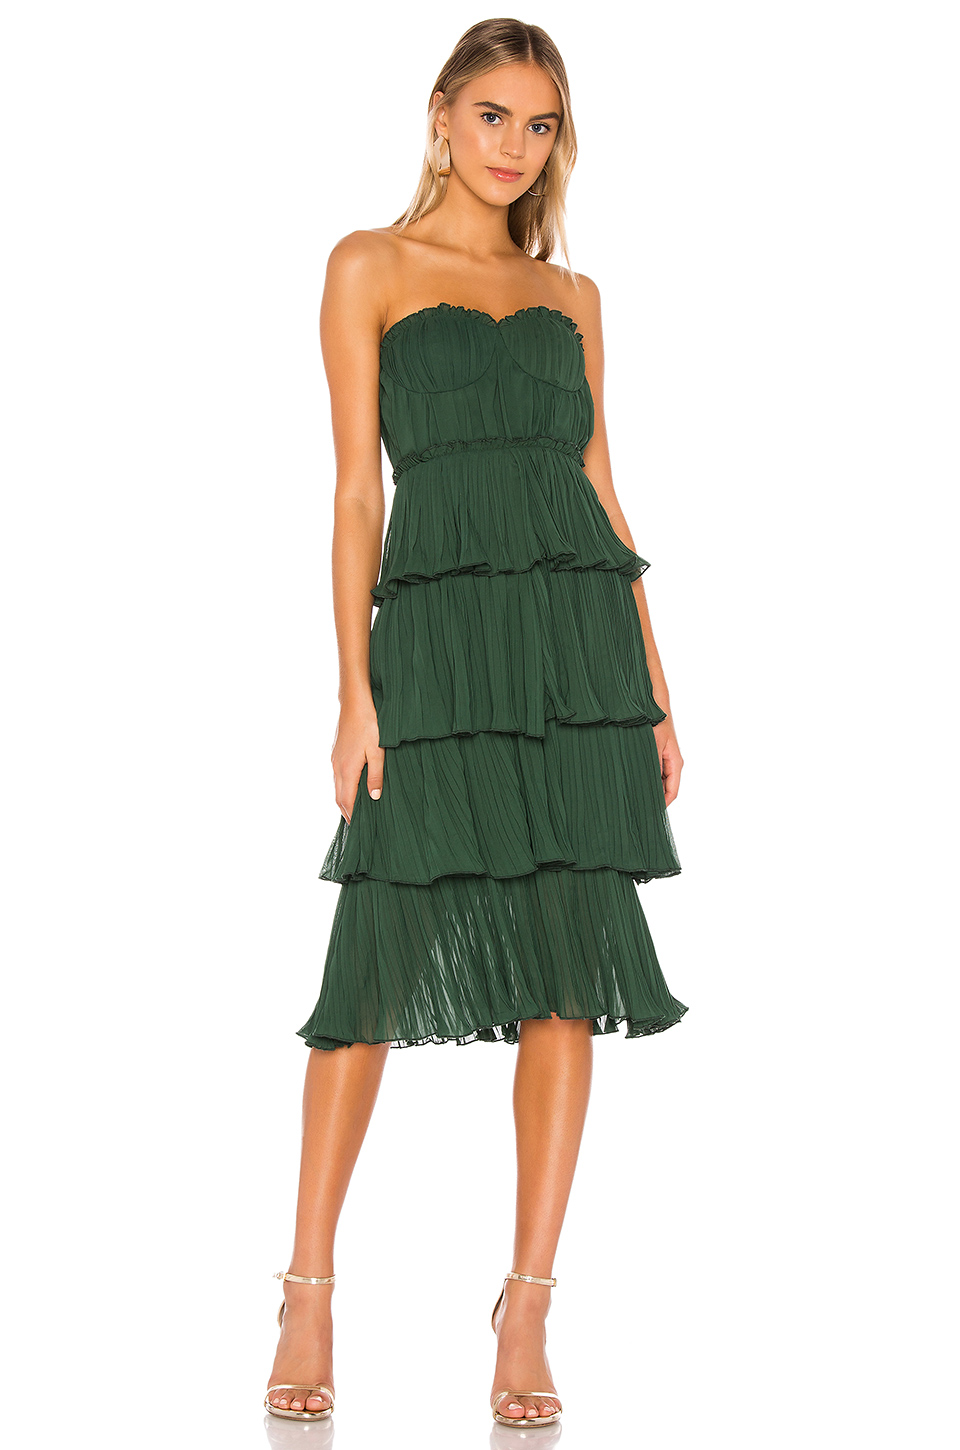 Best Dressed Guest 30 Dresses And Masks To Wear To A Fall Wedding The Everygirl Skip to main search results. masks to wear to a fall wedding